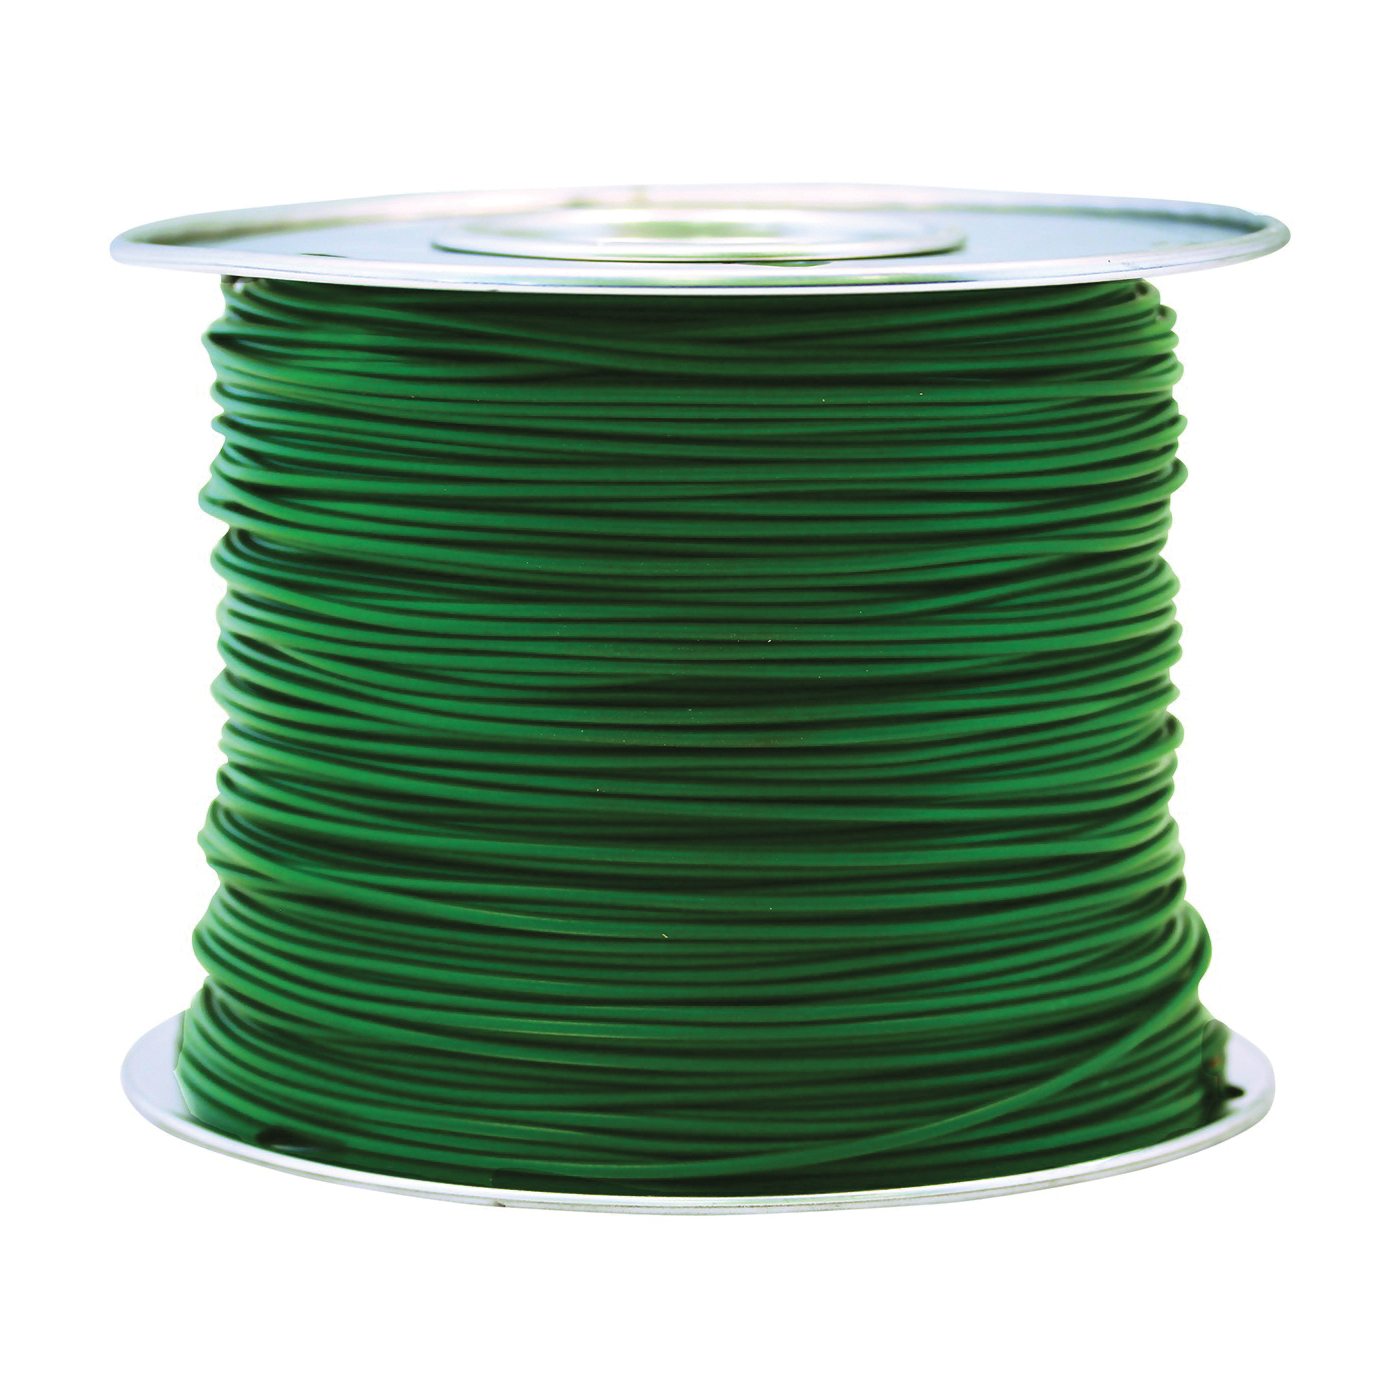 Picture of CCI 56422023 Primary Wire, 16 AWG Wire, 1 -Conductor, 60 VDC, Copper Conductor, Green Sheath